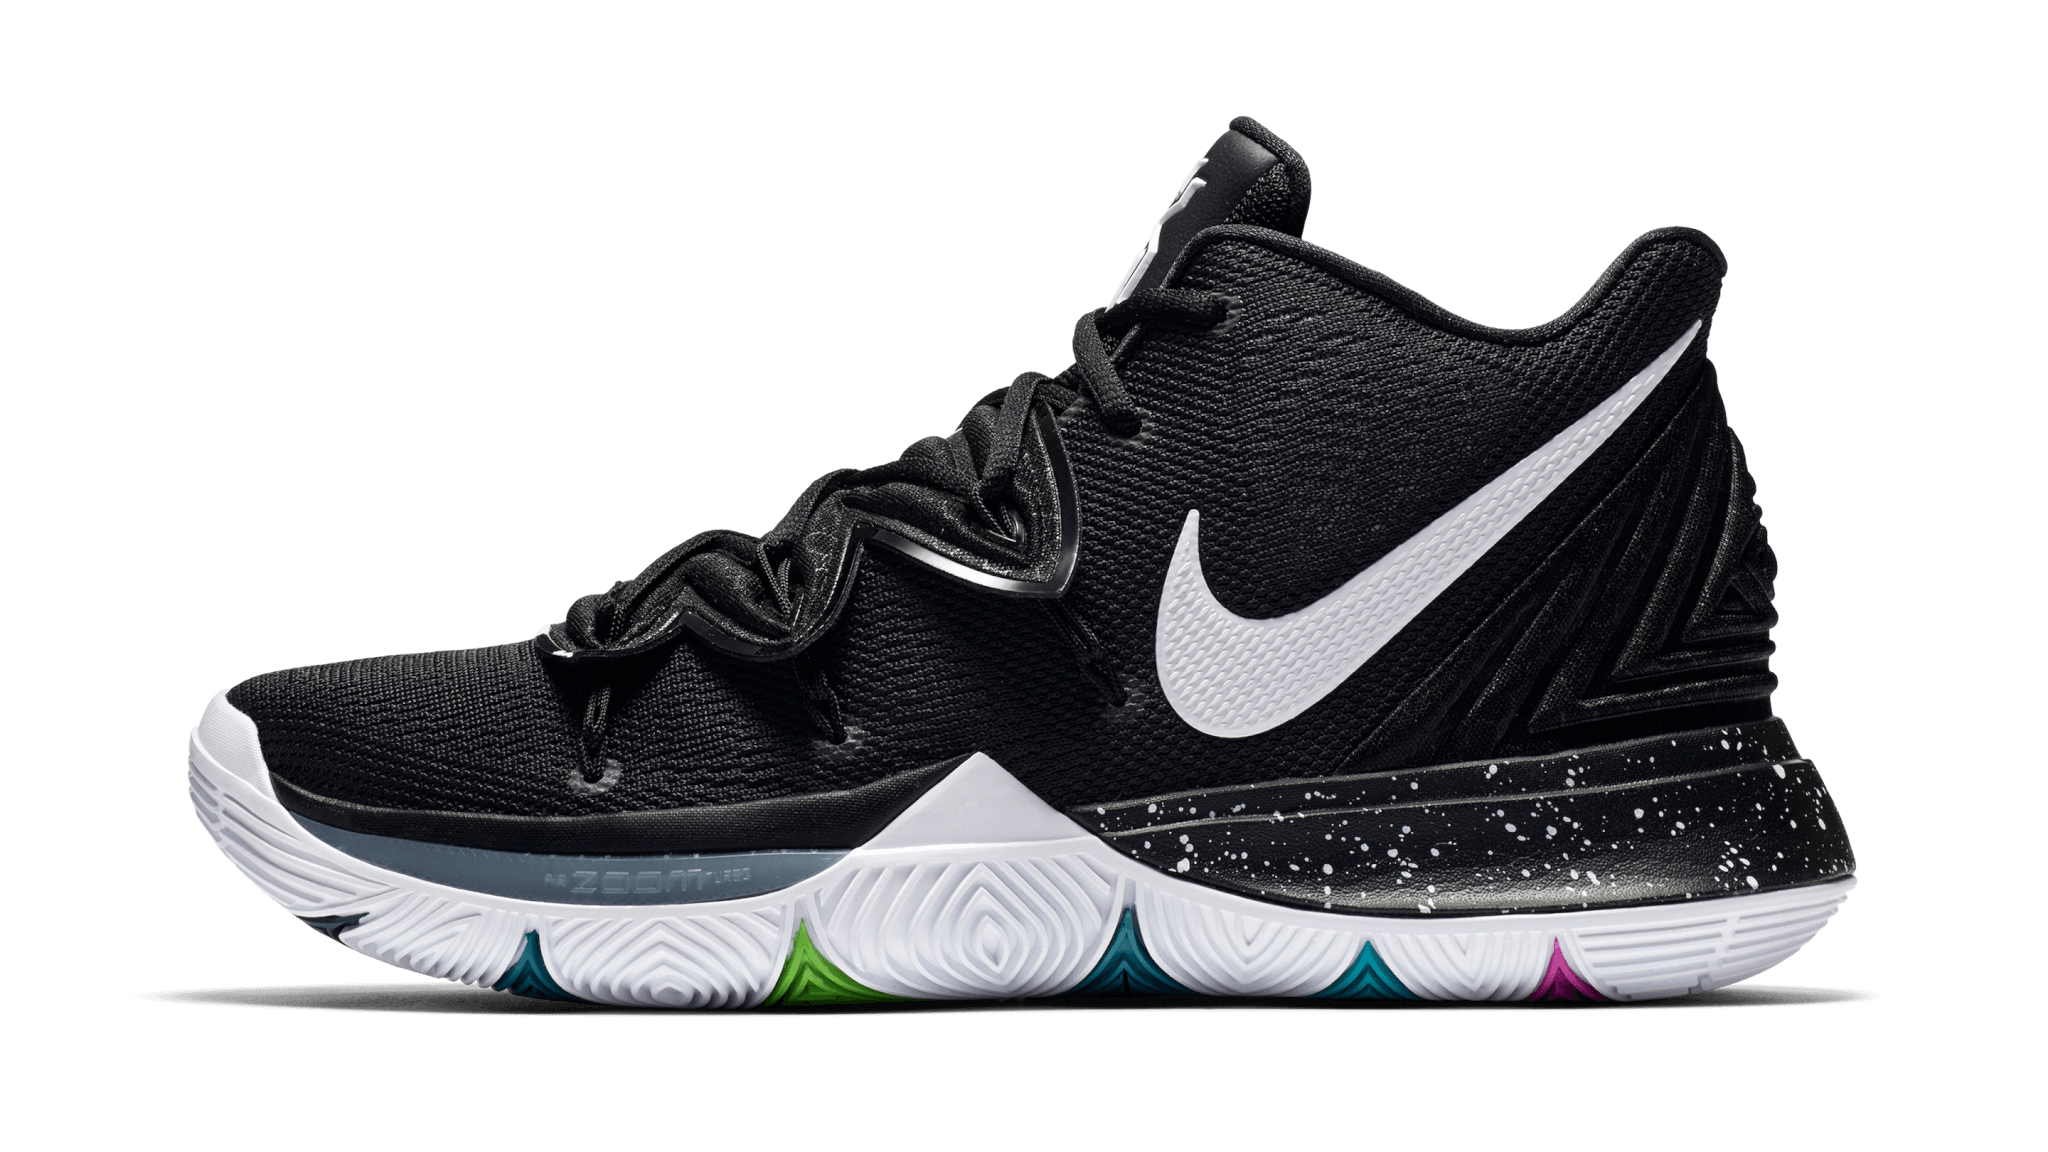 d82ea27850c1 Nike Kyrie 5 Performance Review